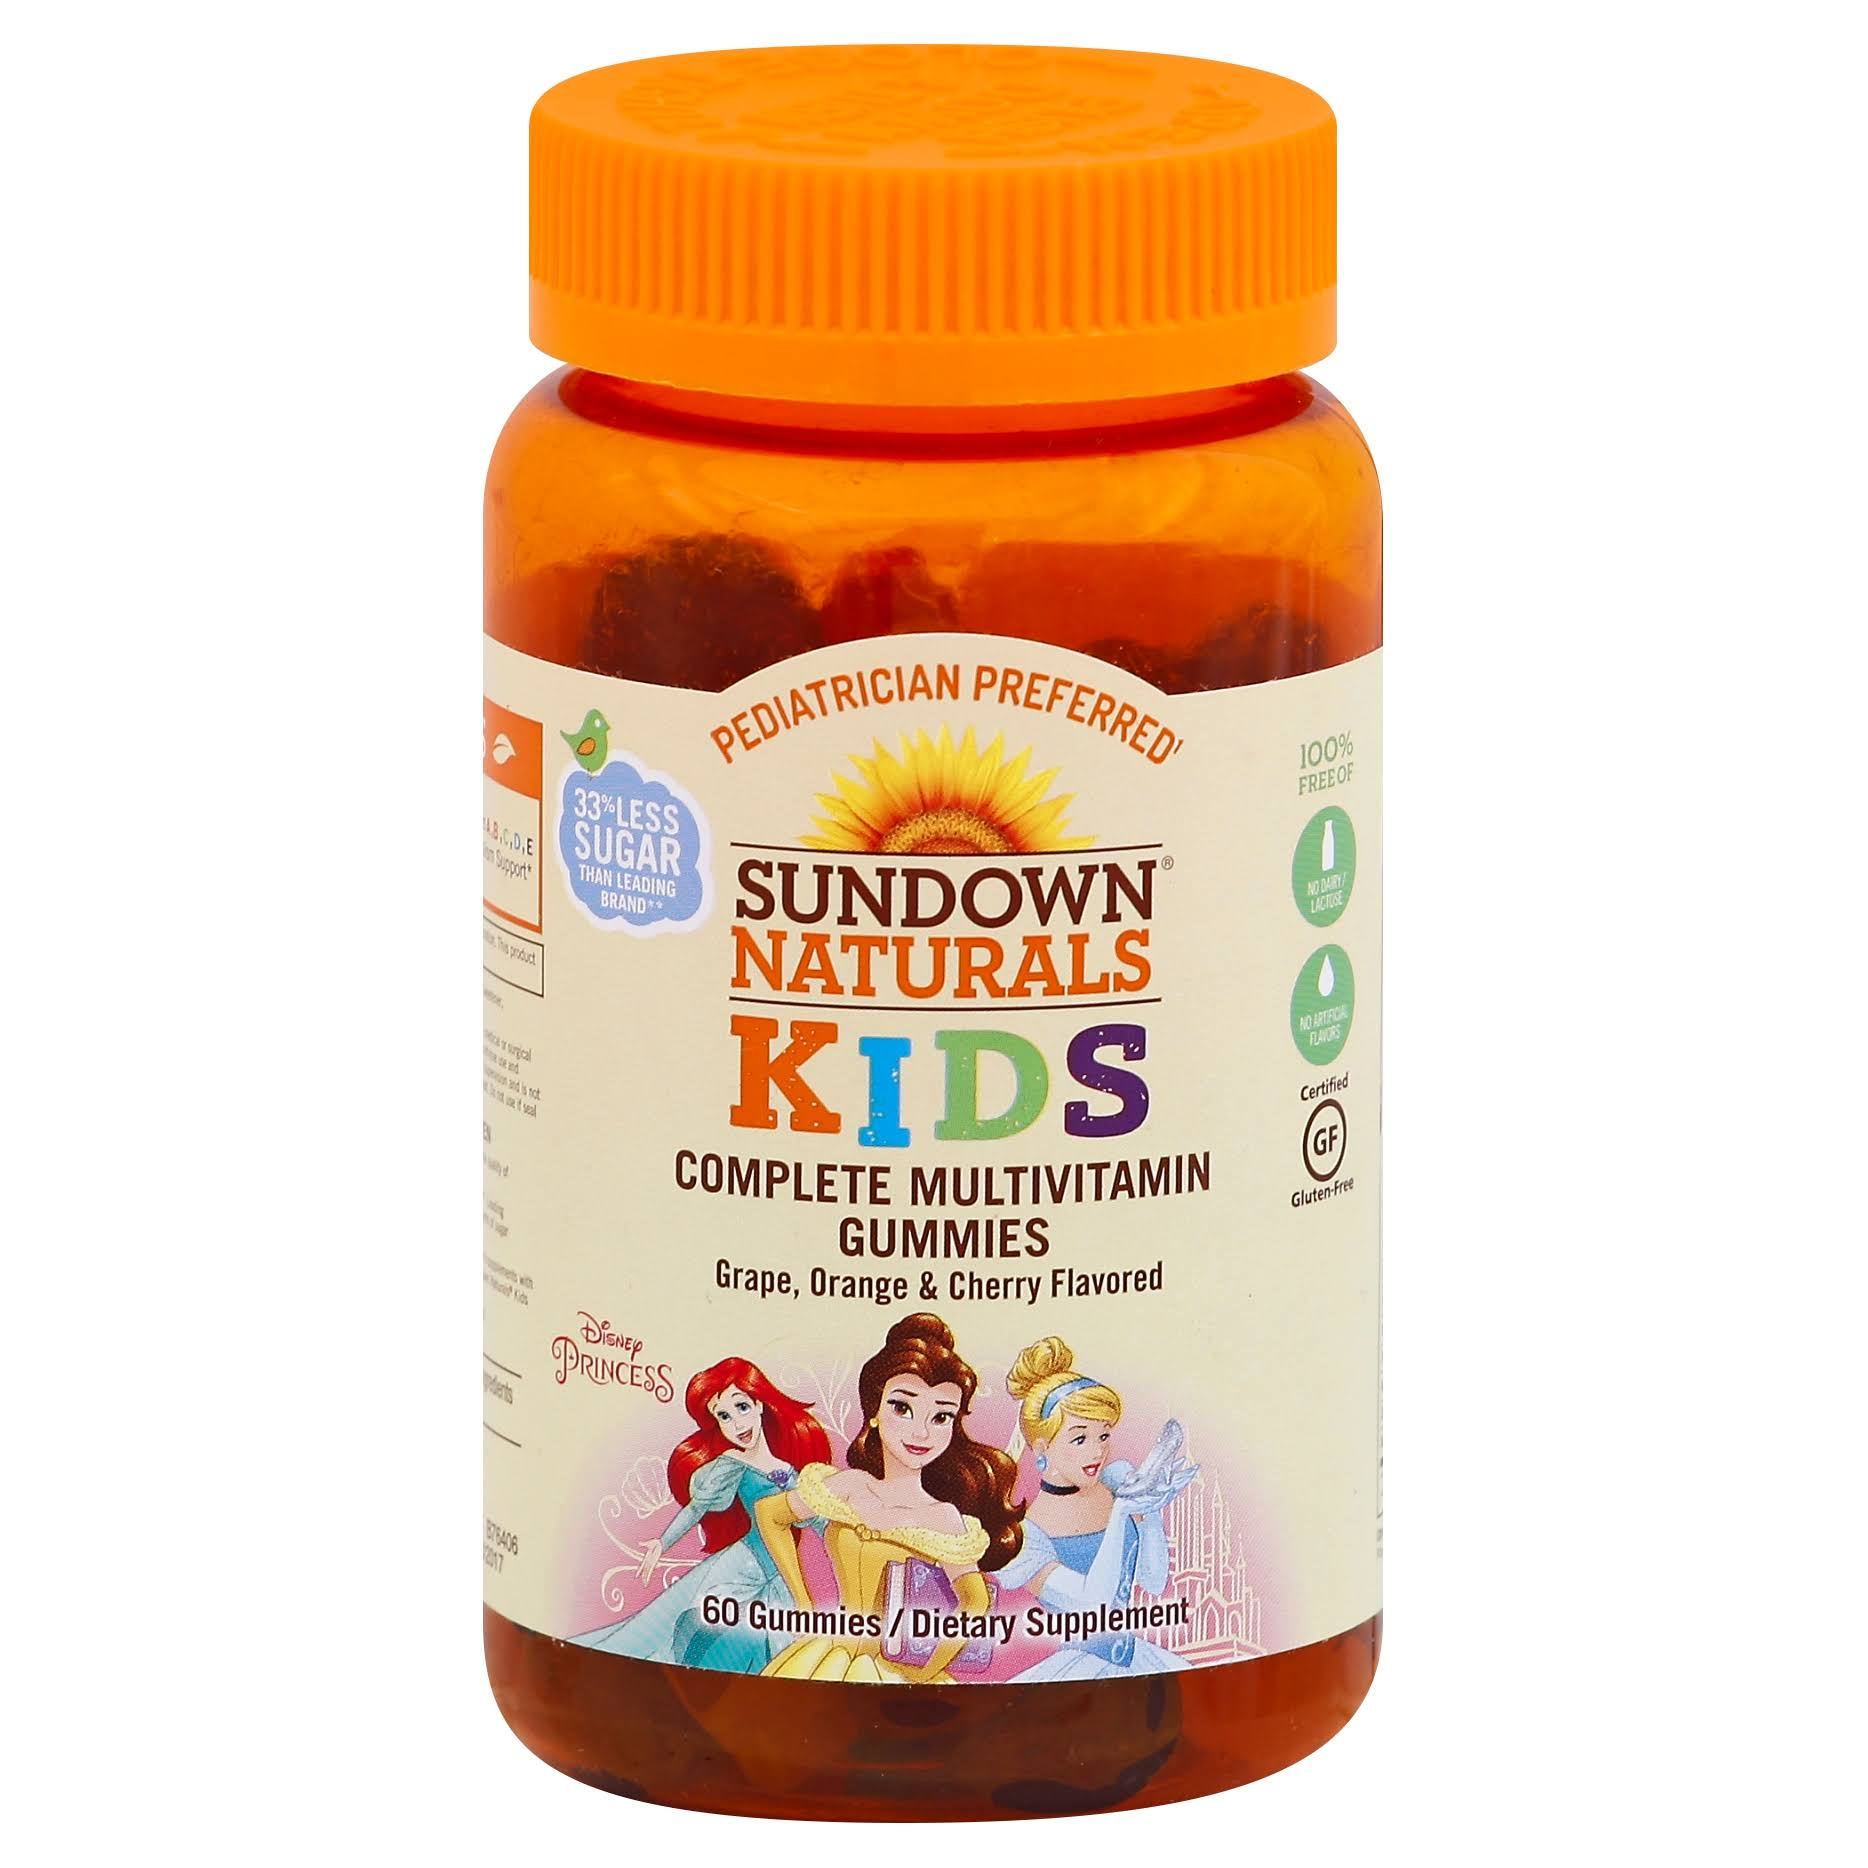 Sundown Naturals Kids Disney Princess Multivitamin Gummies - 60 Count